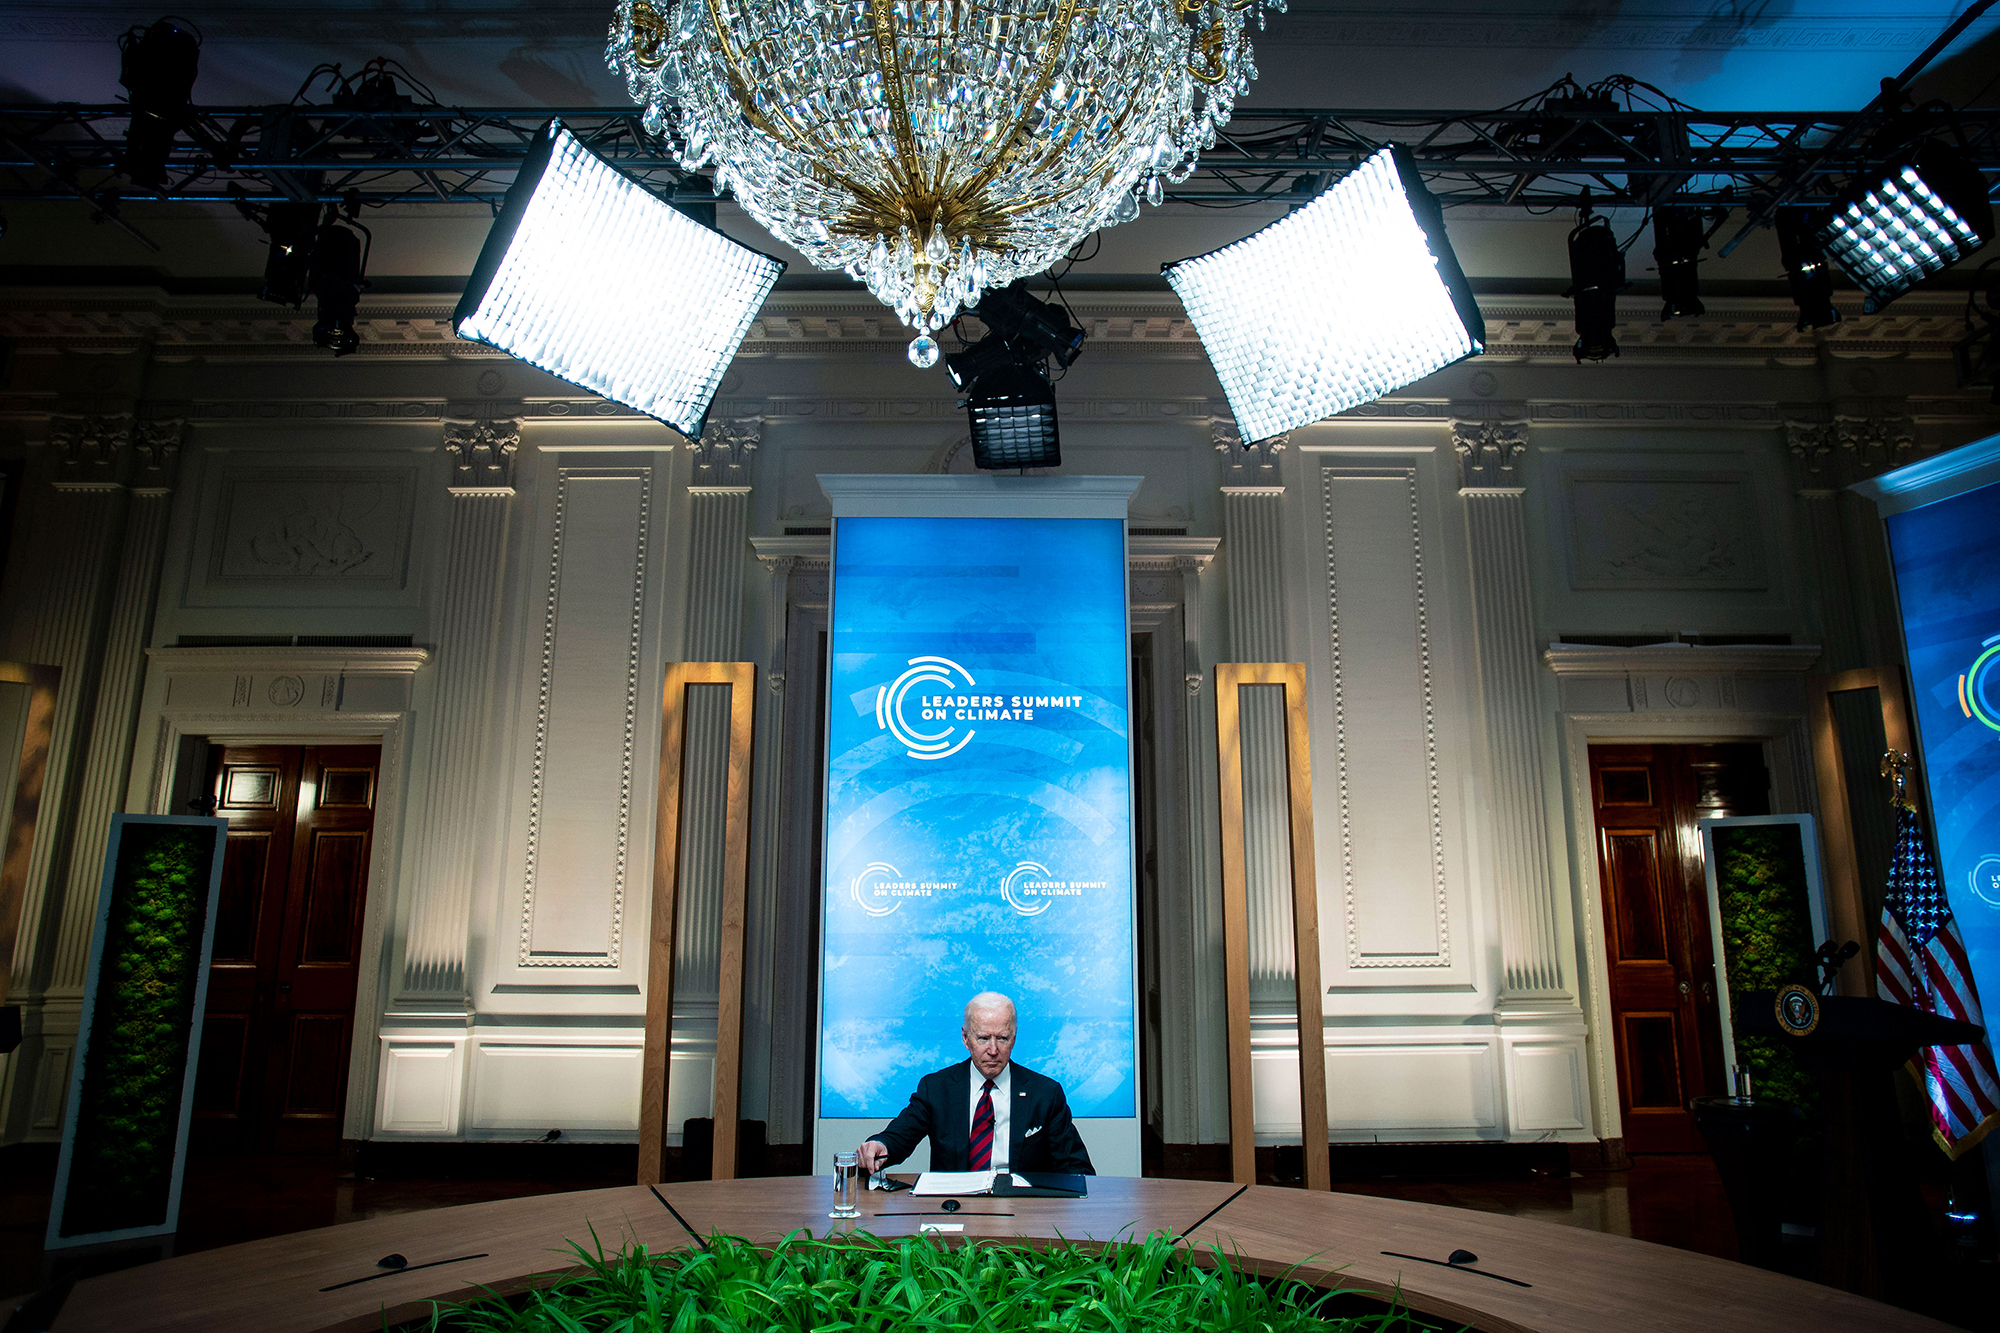 President Joe Biden listens during a virtual Leaders Summit on Climate at the White House on Thursday, April 22, in Washington.